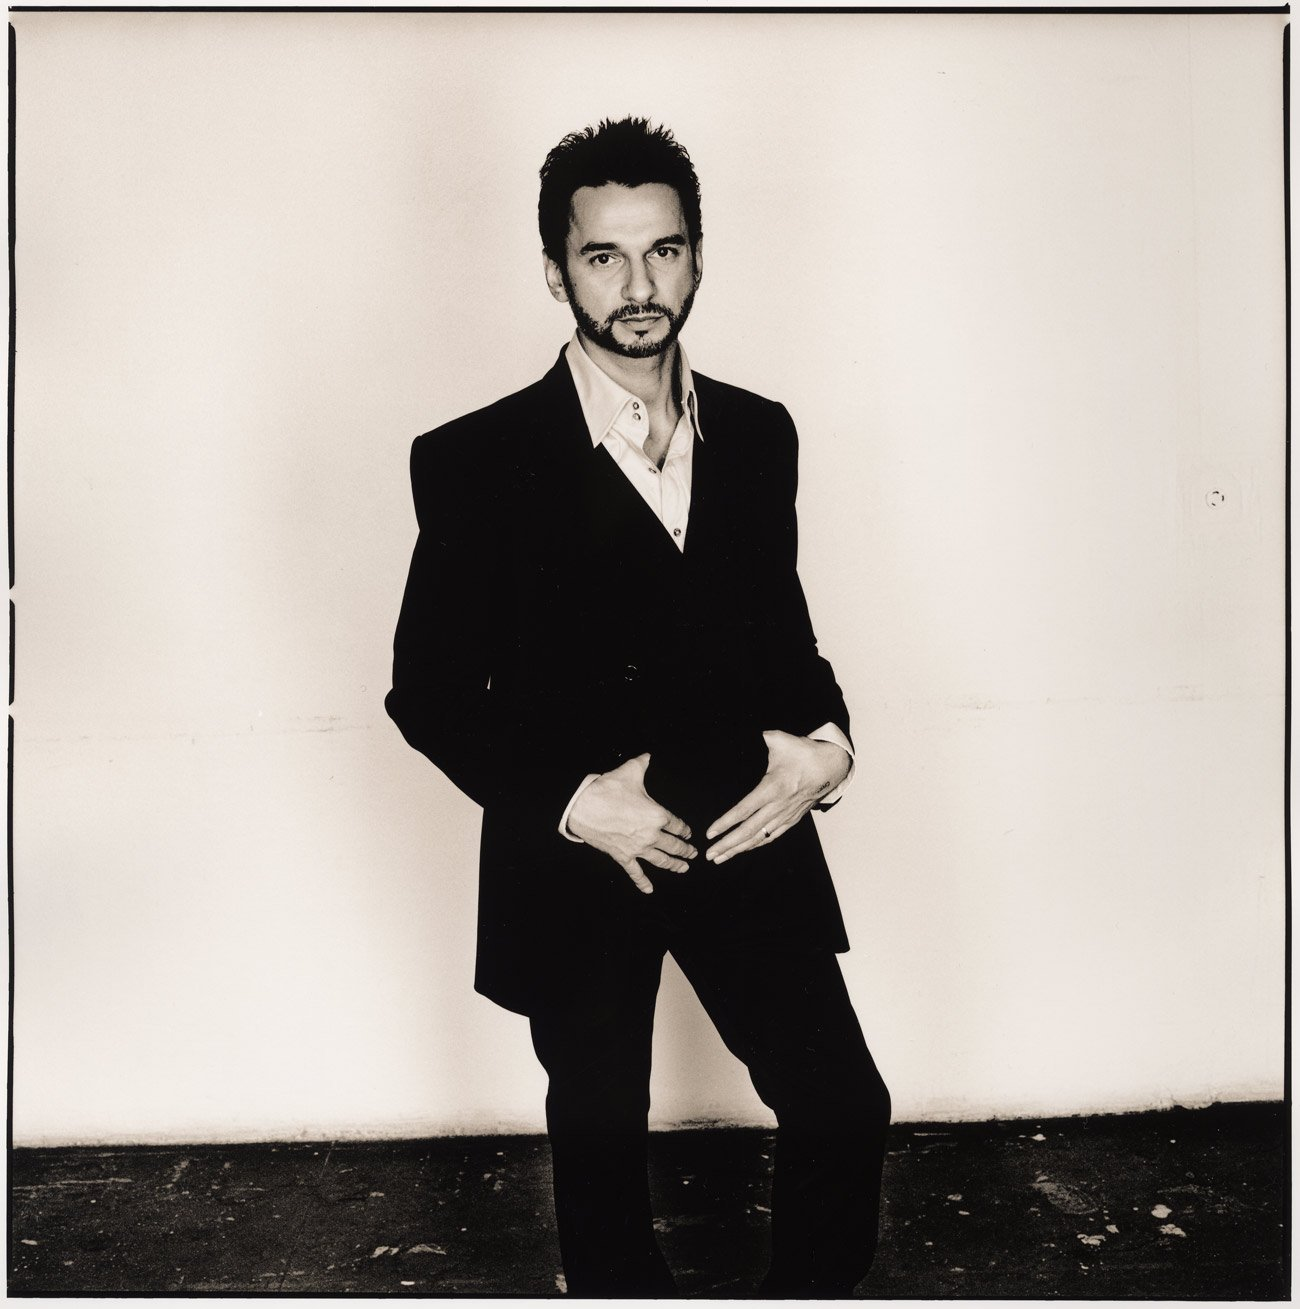 Let's all wish a Happy Birthday to Dave! #HappyBirthdayDaveGahan https://t.co/DDM4PIQc7w